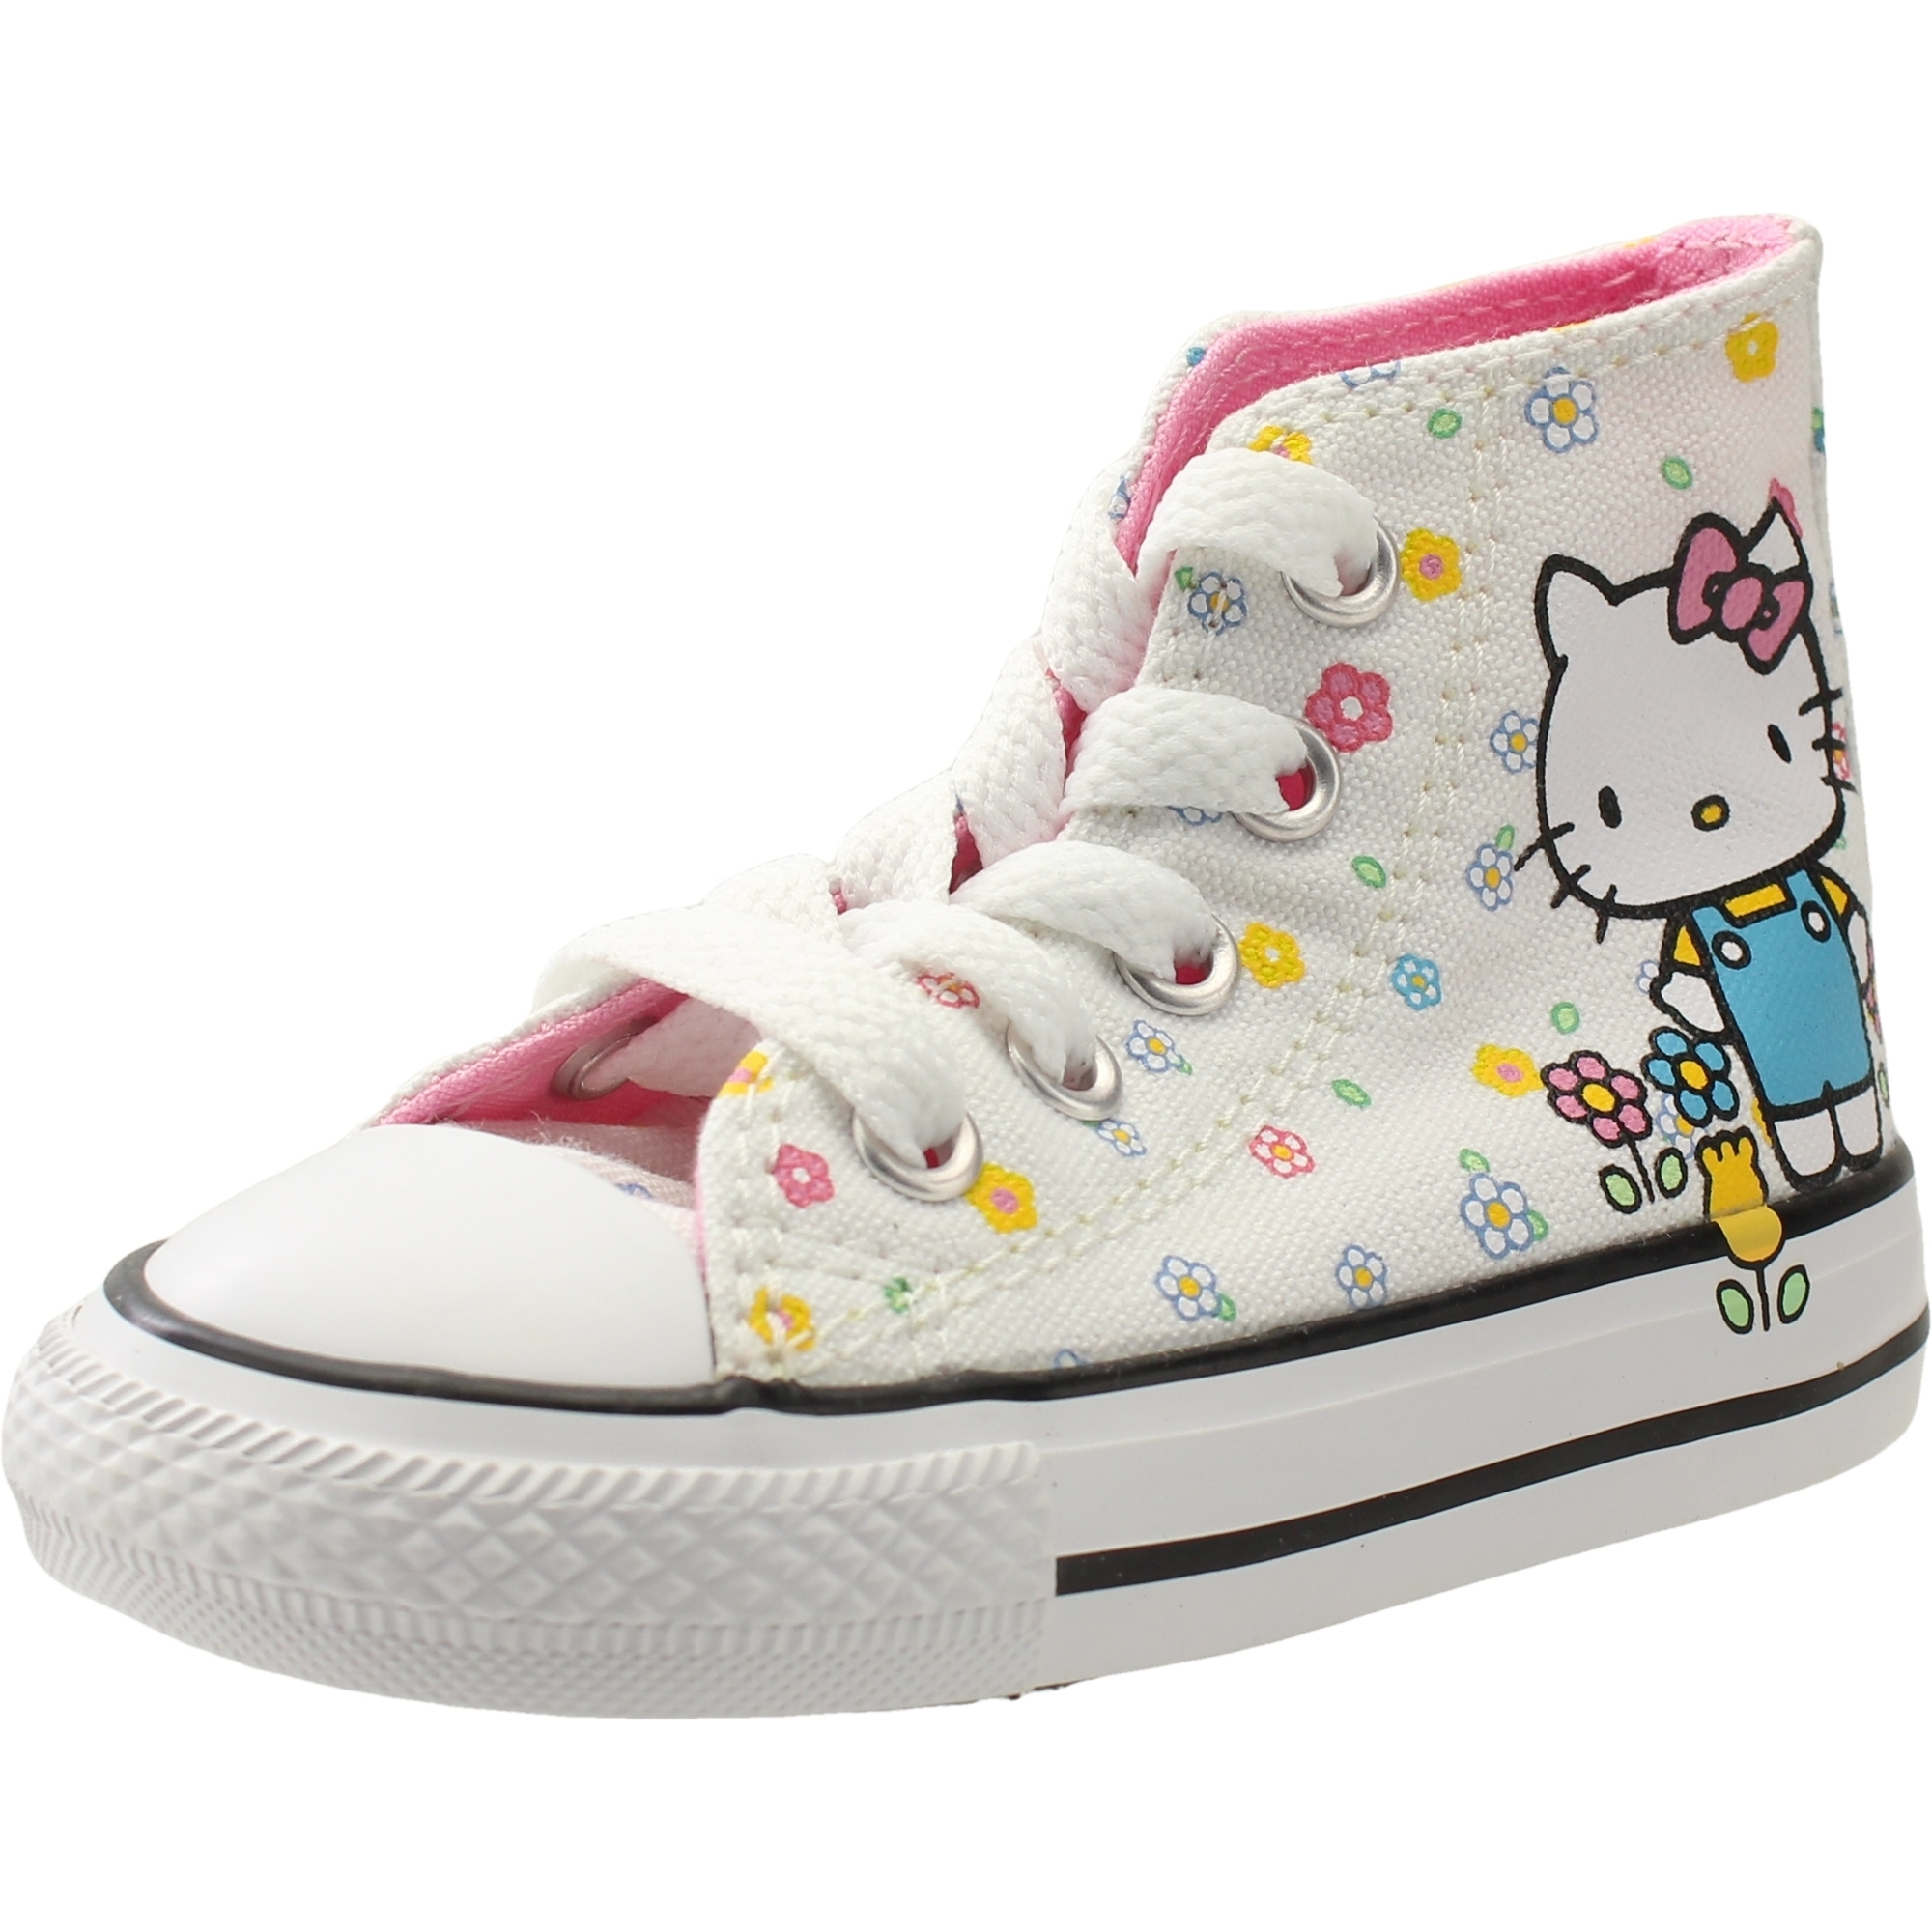 Converse Chuck Taylor All Star Hello Kitty Hi WhitePink Textile Baby